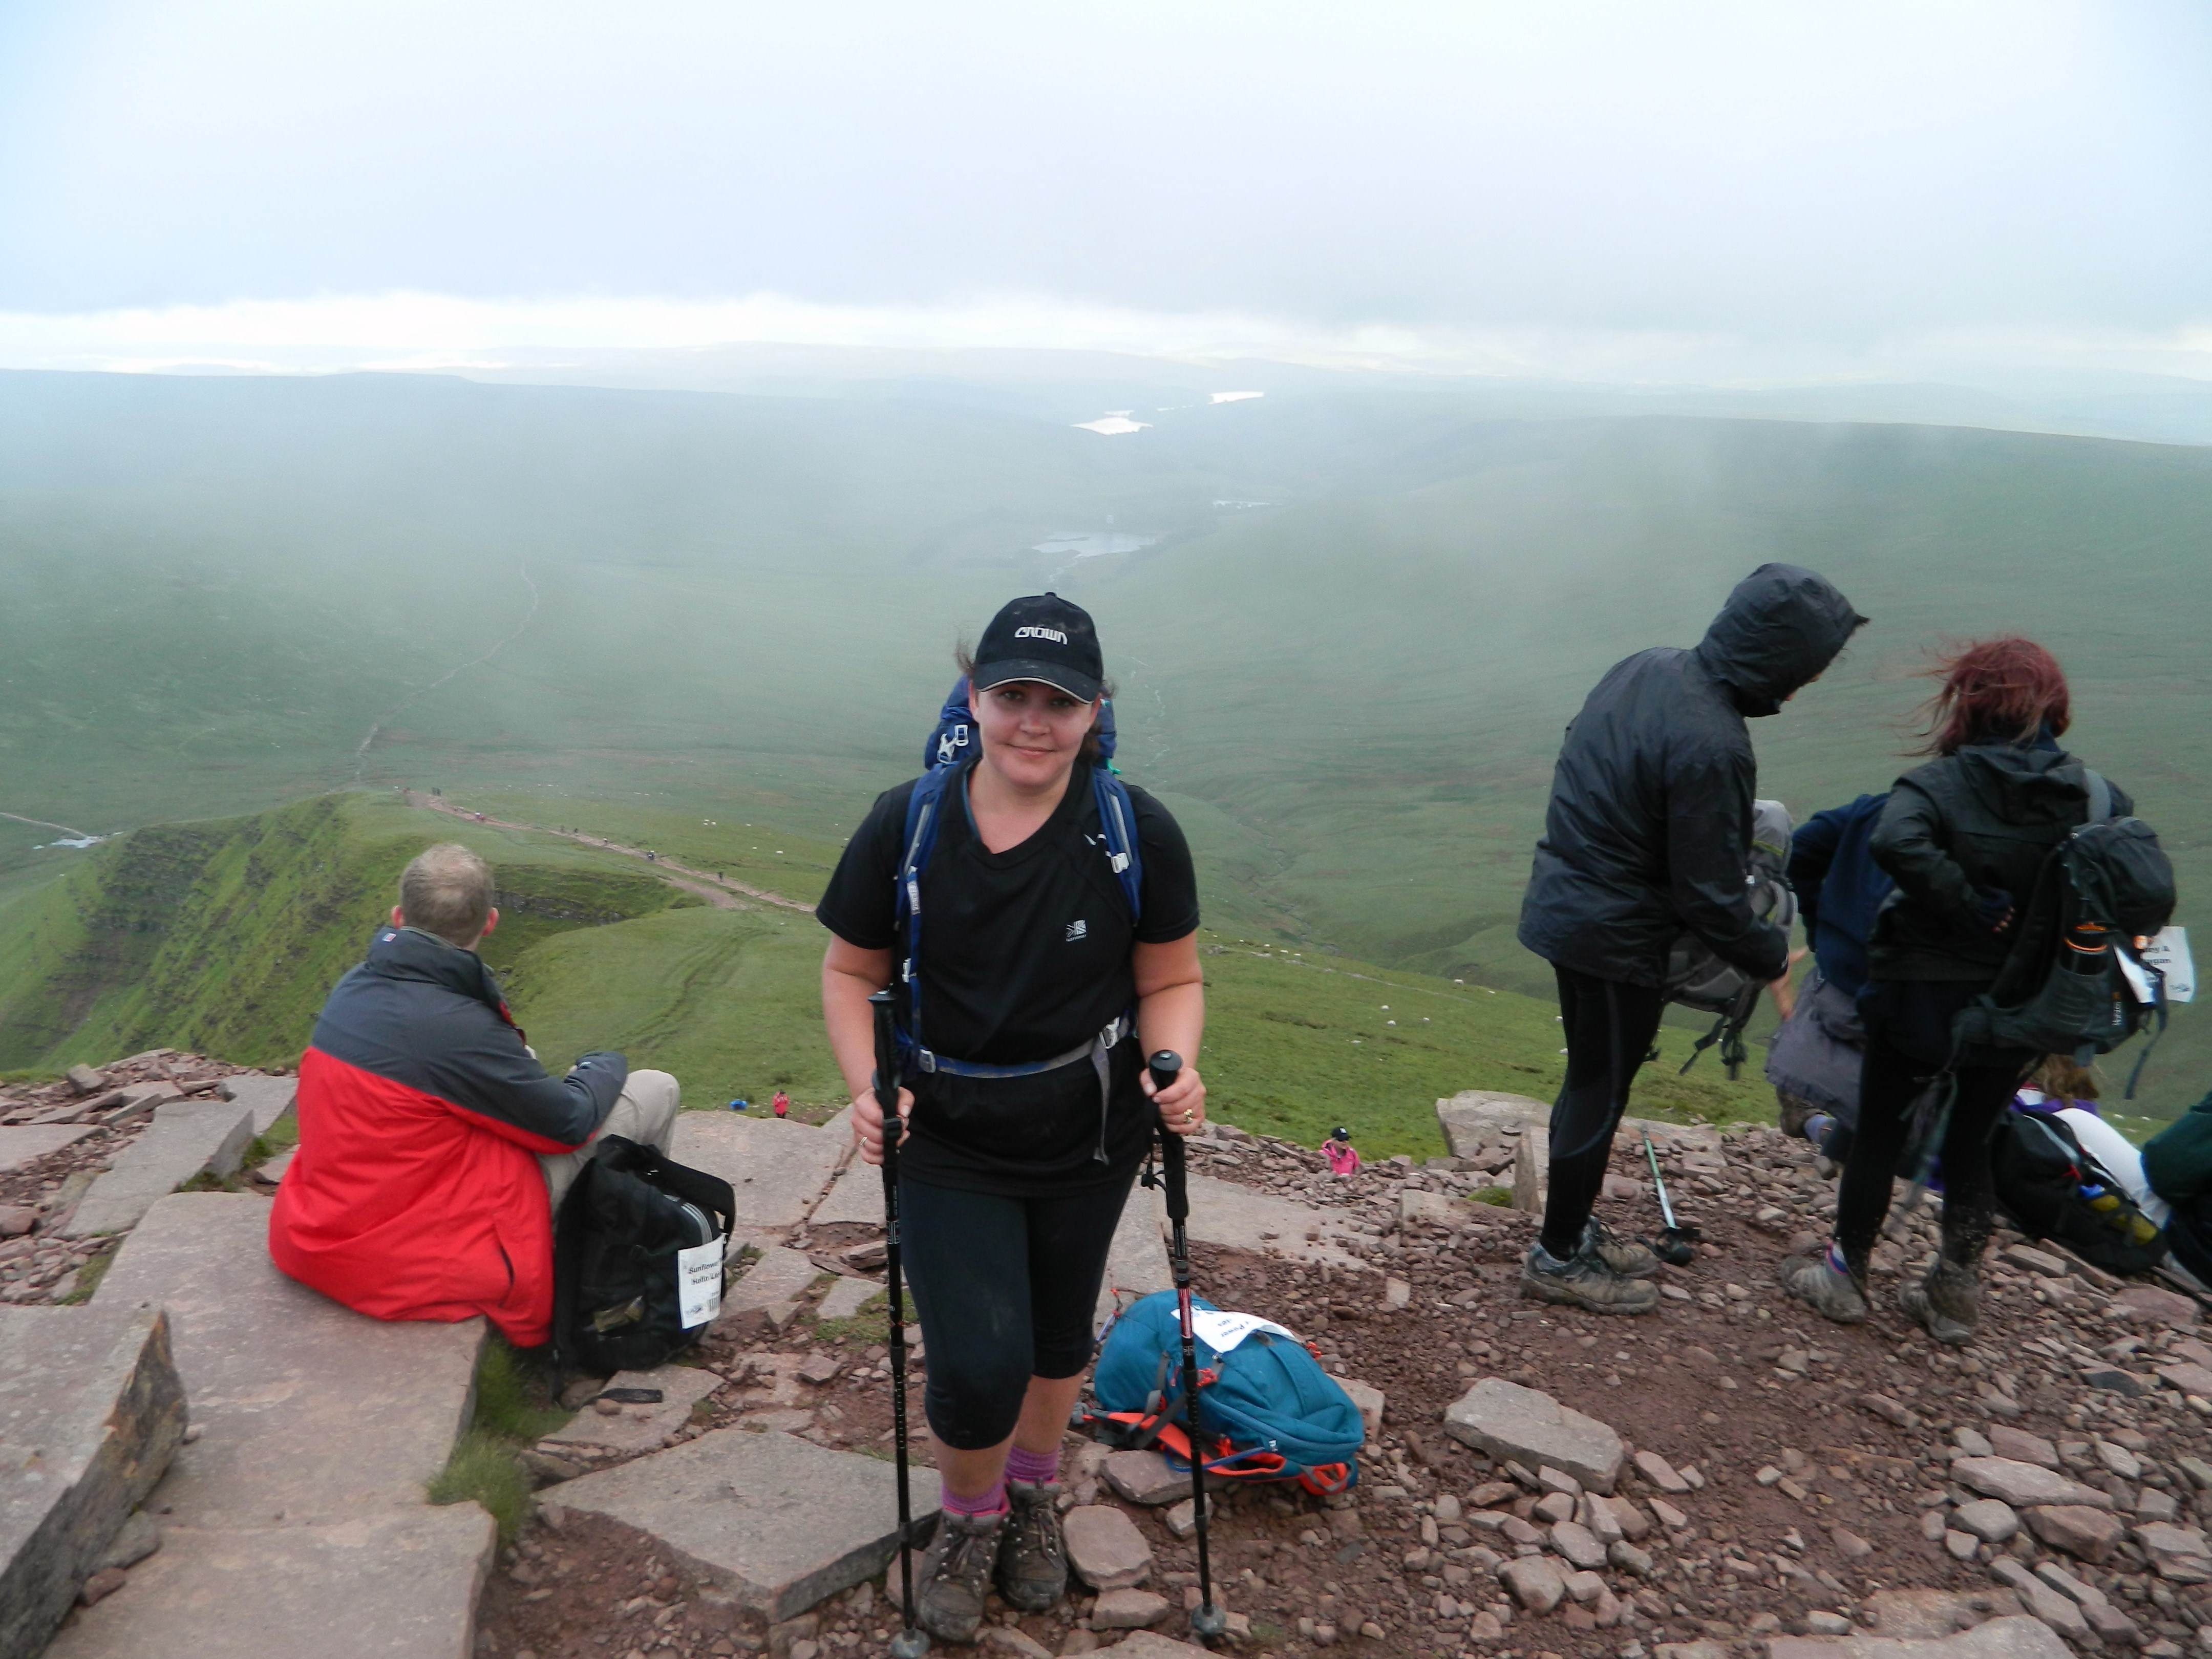 020 Trekfest 2014   The Brecon Beacons